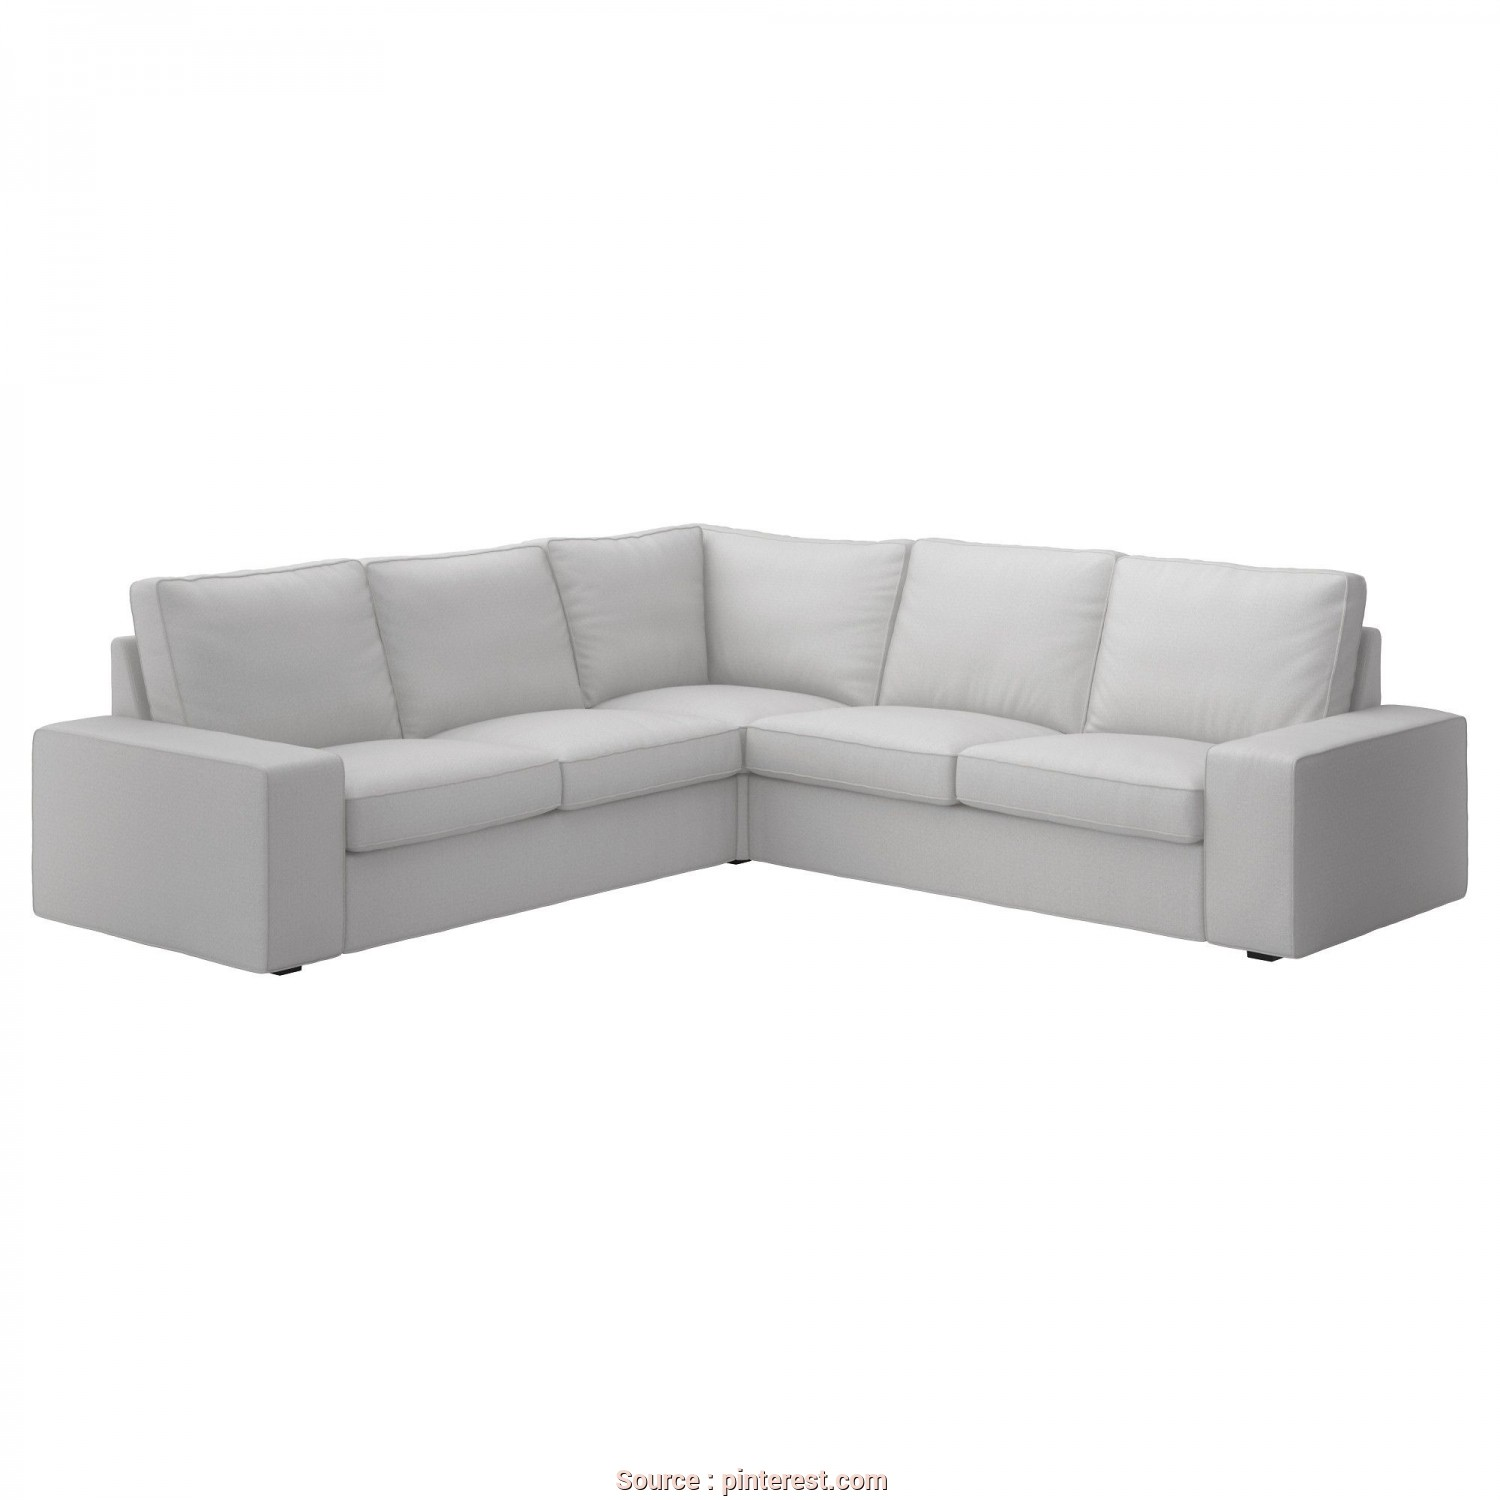 Kivik 3 Posti Beige, Affascinante US, Furniture, Home Furnishings, Make It Home, Corner Sofa, Ikea, Living Room